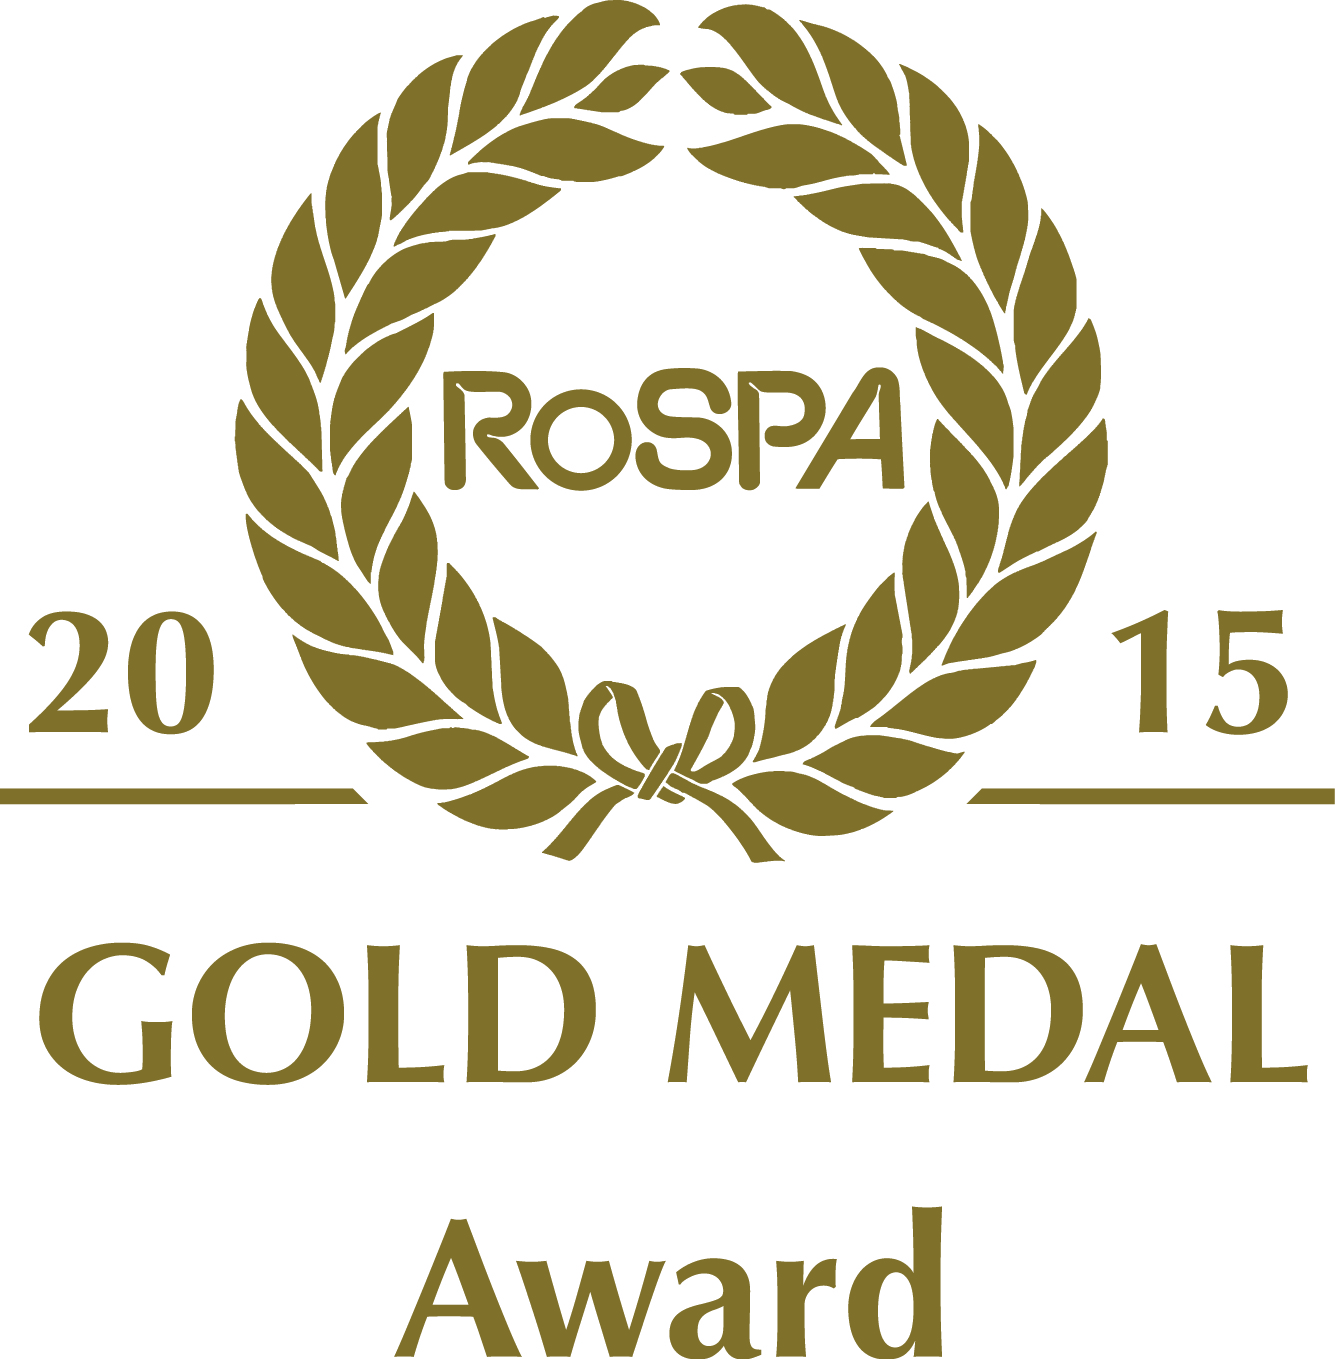 gold MEDAL award 2015